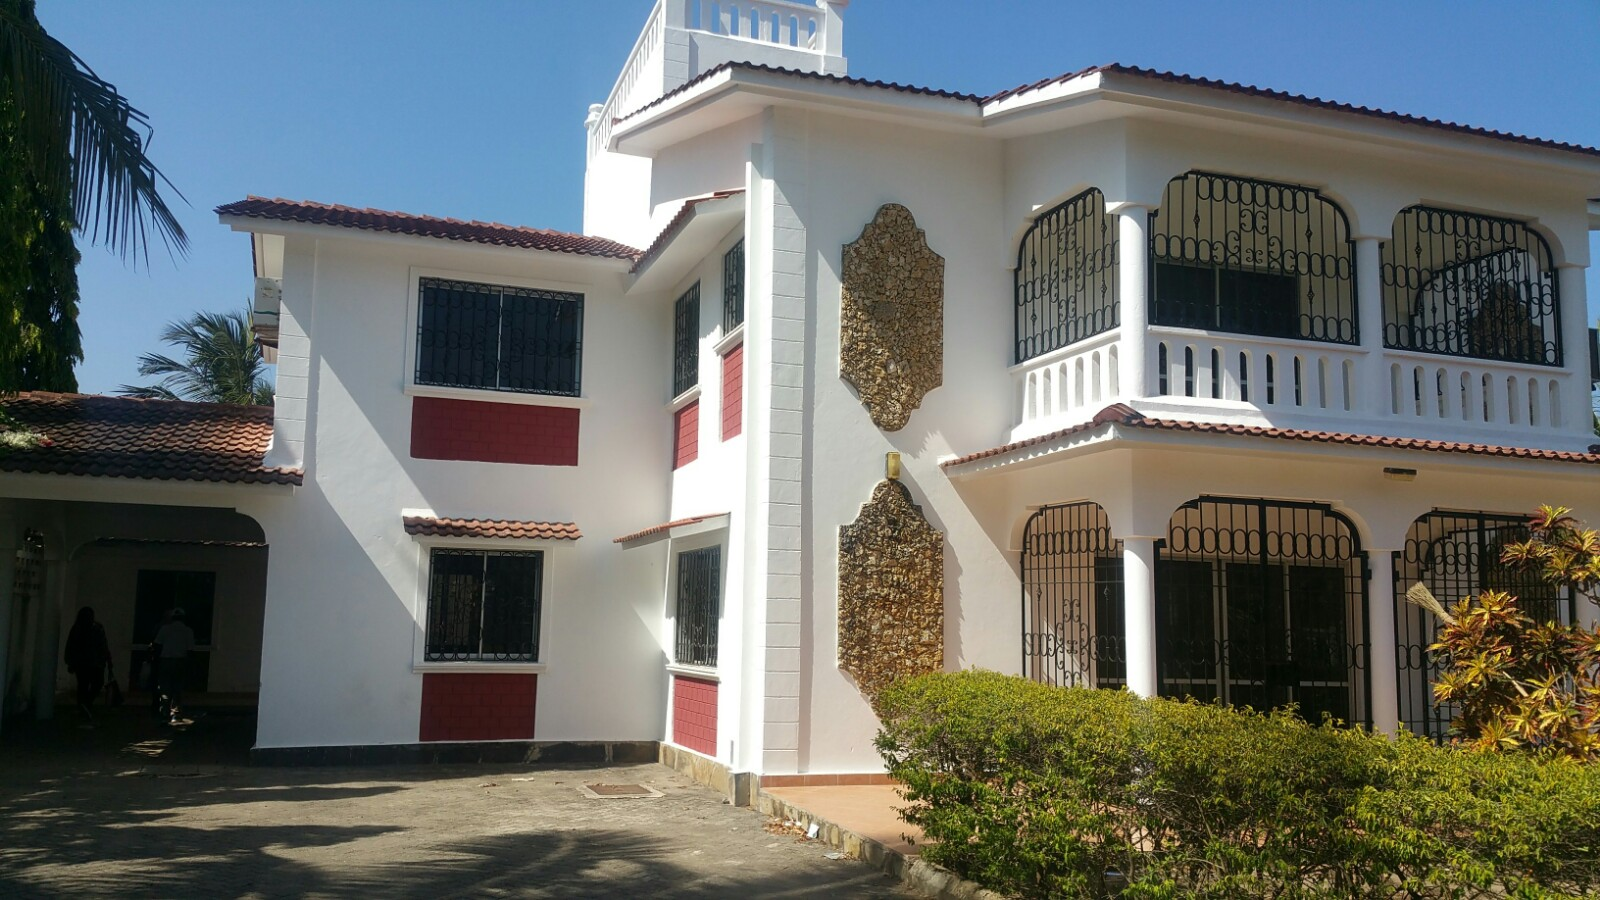 4 br All ensuite House for sale in a prestigious gated community in Nyali.